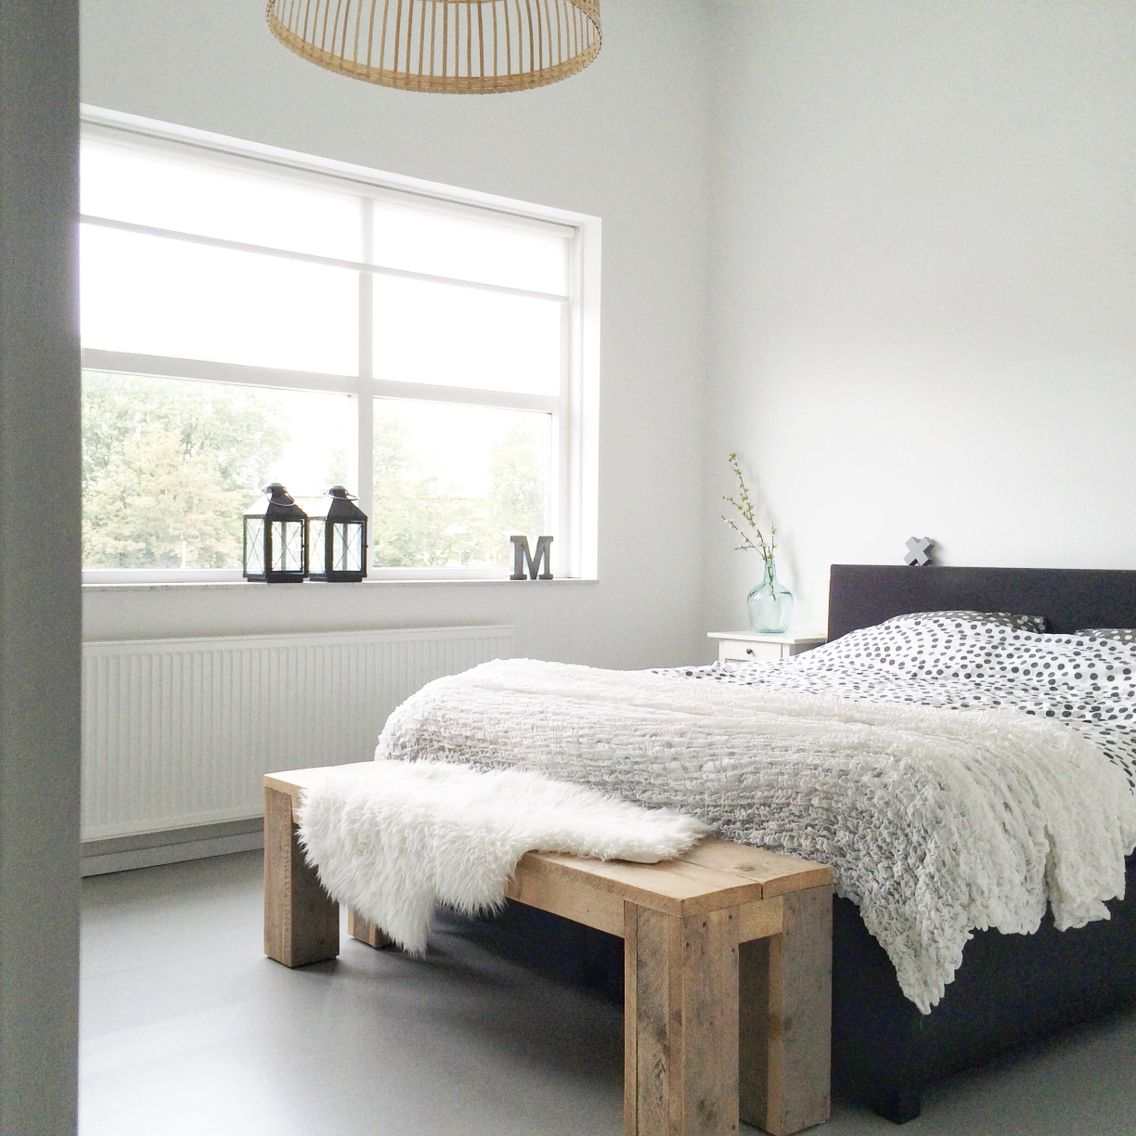 Bedroom grey white wood. Slaapkamer wit grijs hout. | Bedroom & en ...